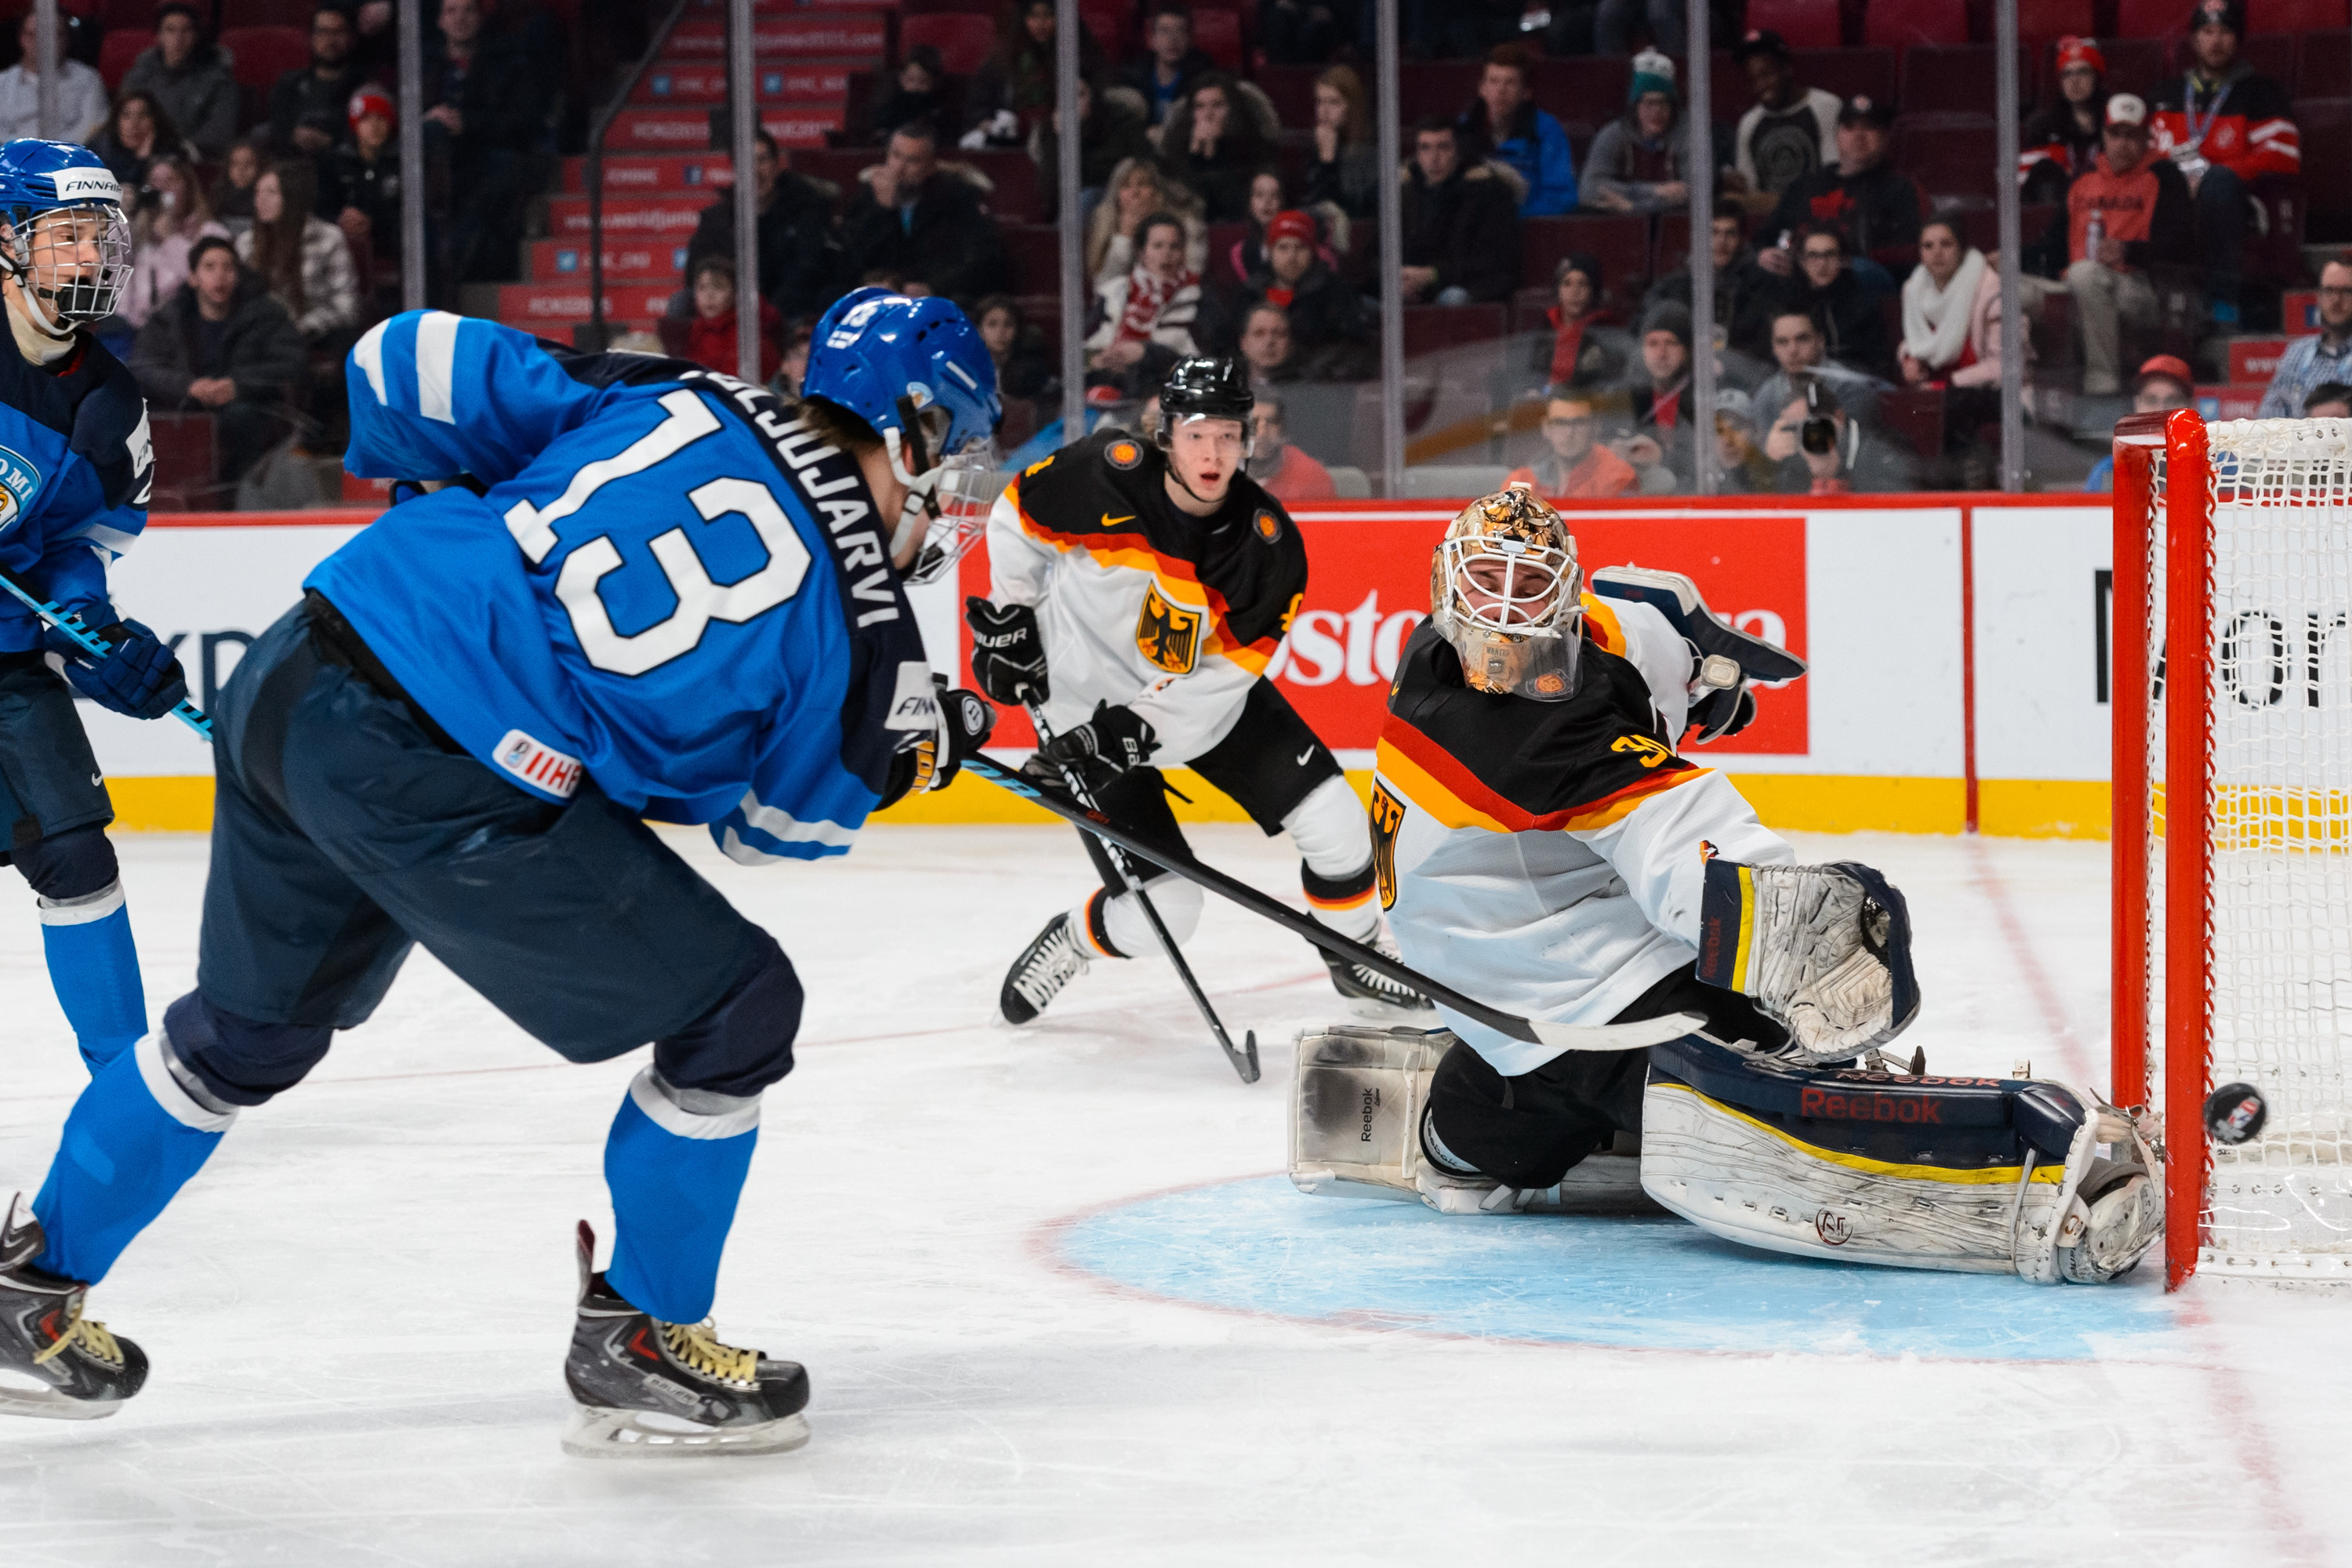 Jesse Puljijarvi playing against Germany in the 2015 WJC.